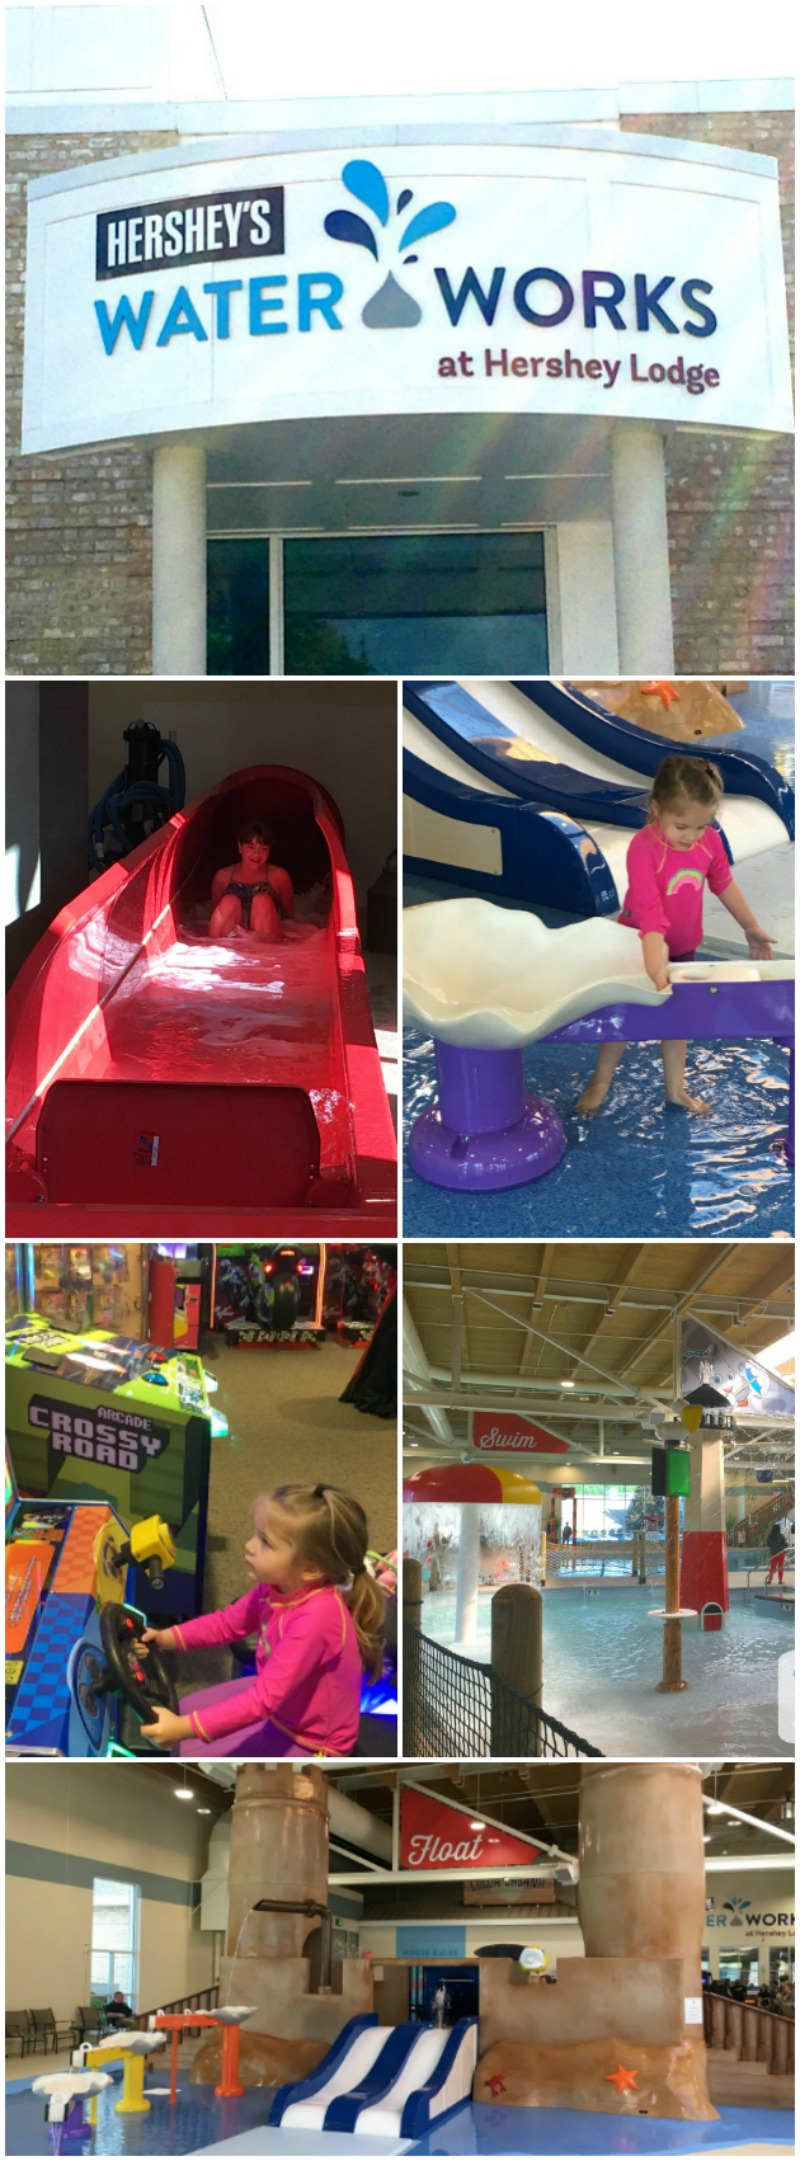 The Hershey Waterworks at the Hershey Lodge is fun for the entire family!